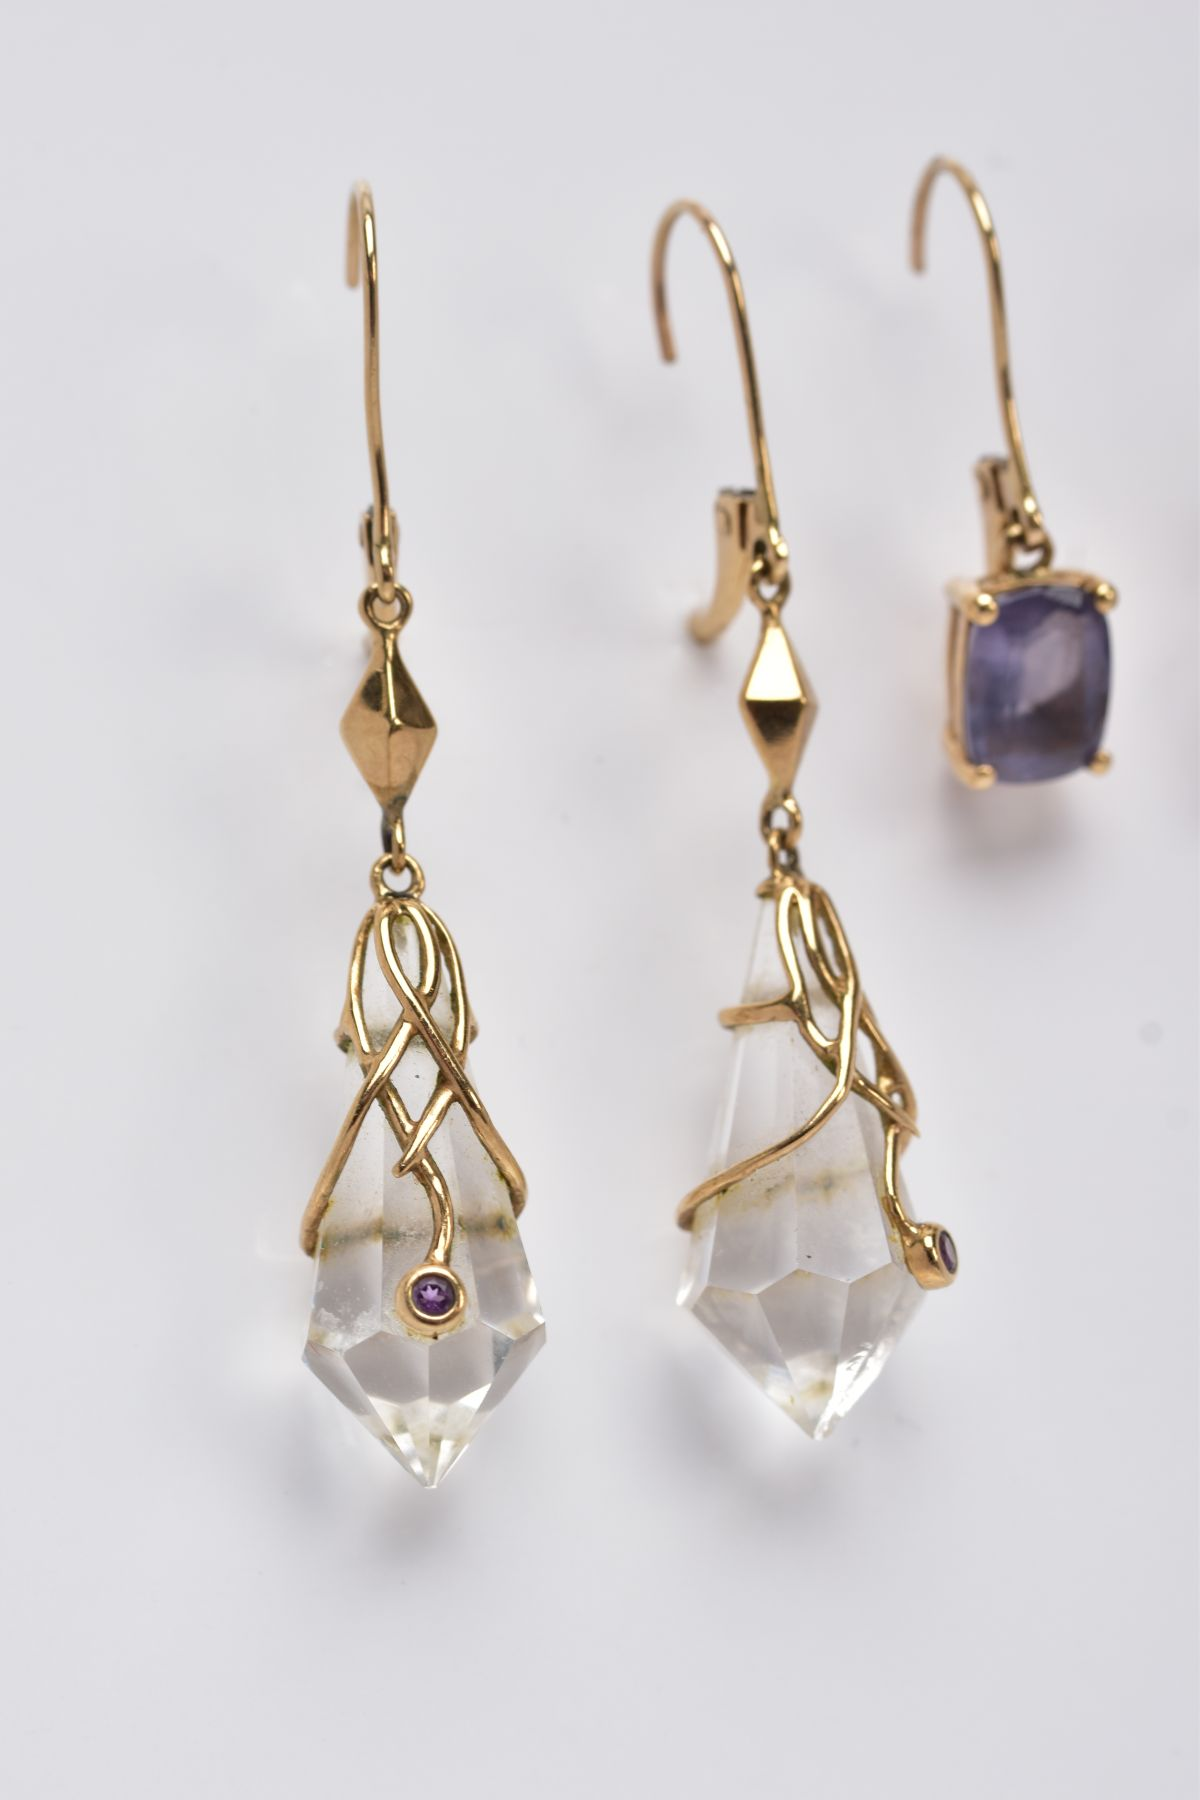 TWO PAIRS OF YELLOW METAL GEMSET DROP EARRINGS, the first pair suspending claw set, oval cut - Image 3 of 4